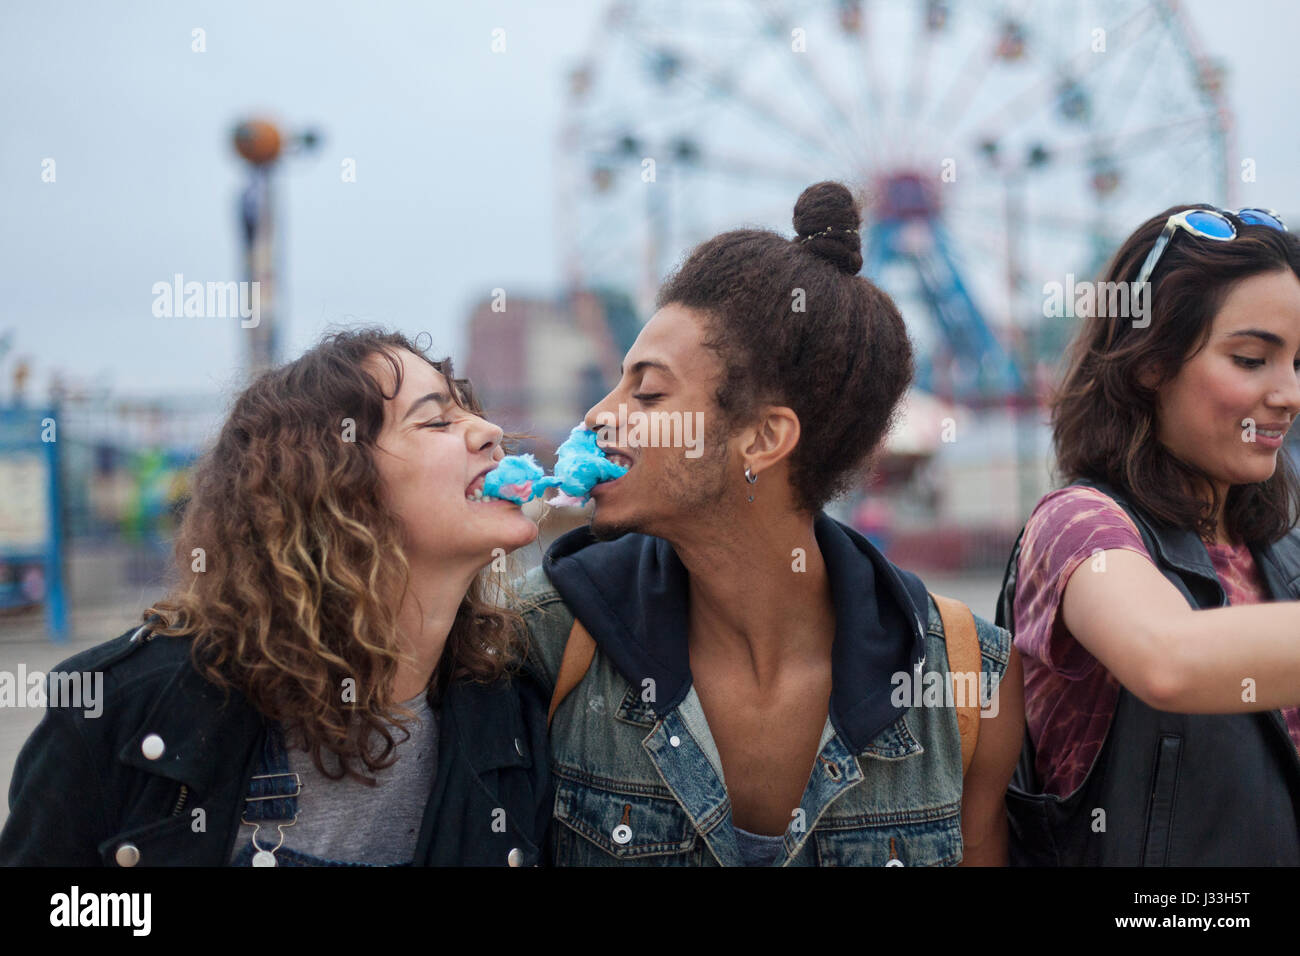 Friends eating cotton candy at an amusement park - Stock Image